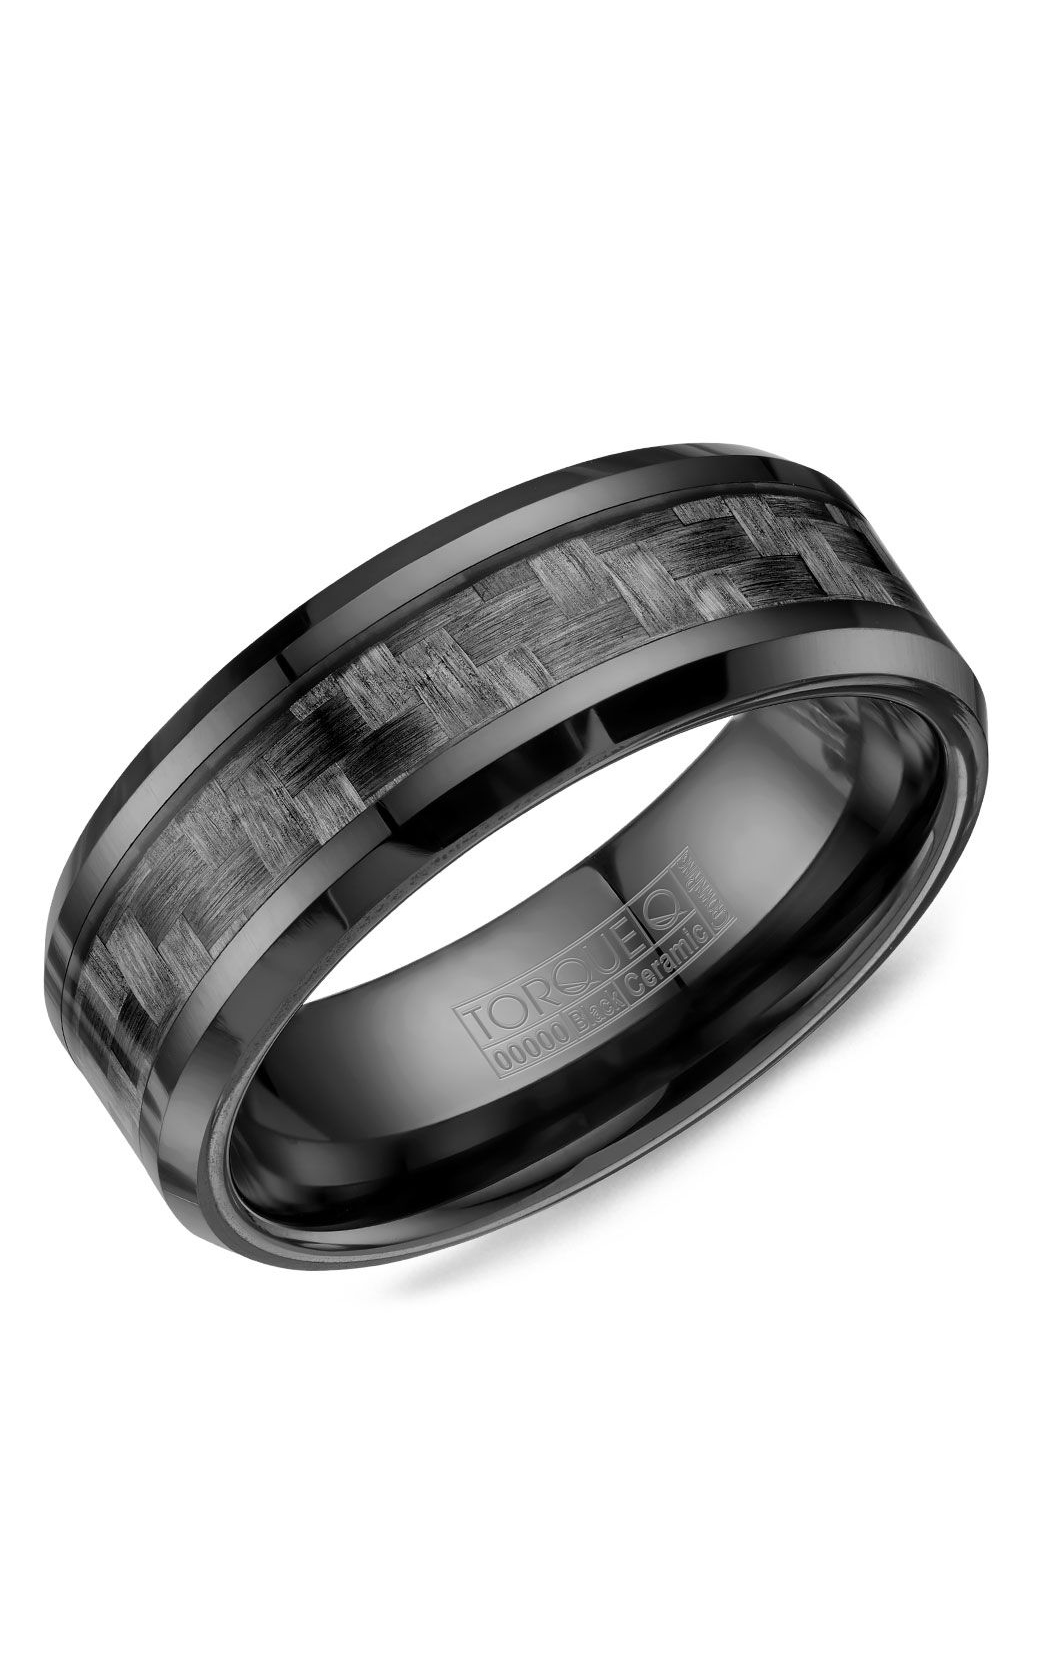 Torque Tungsten BCE-0001 product image